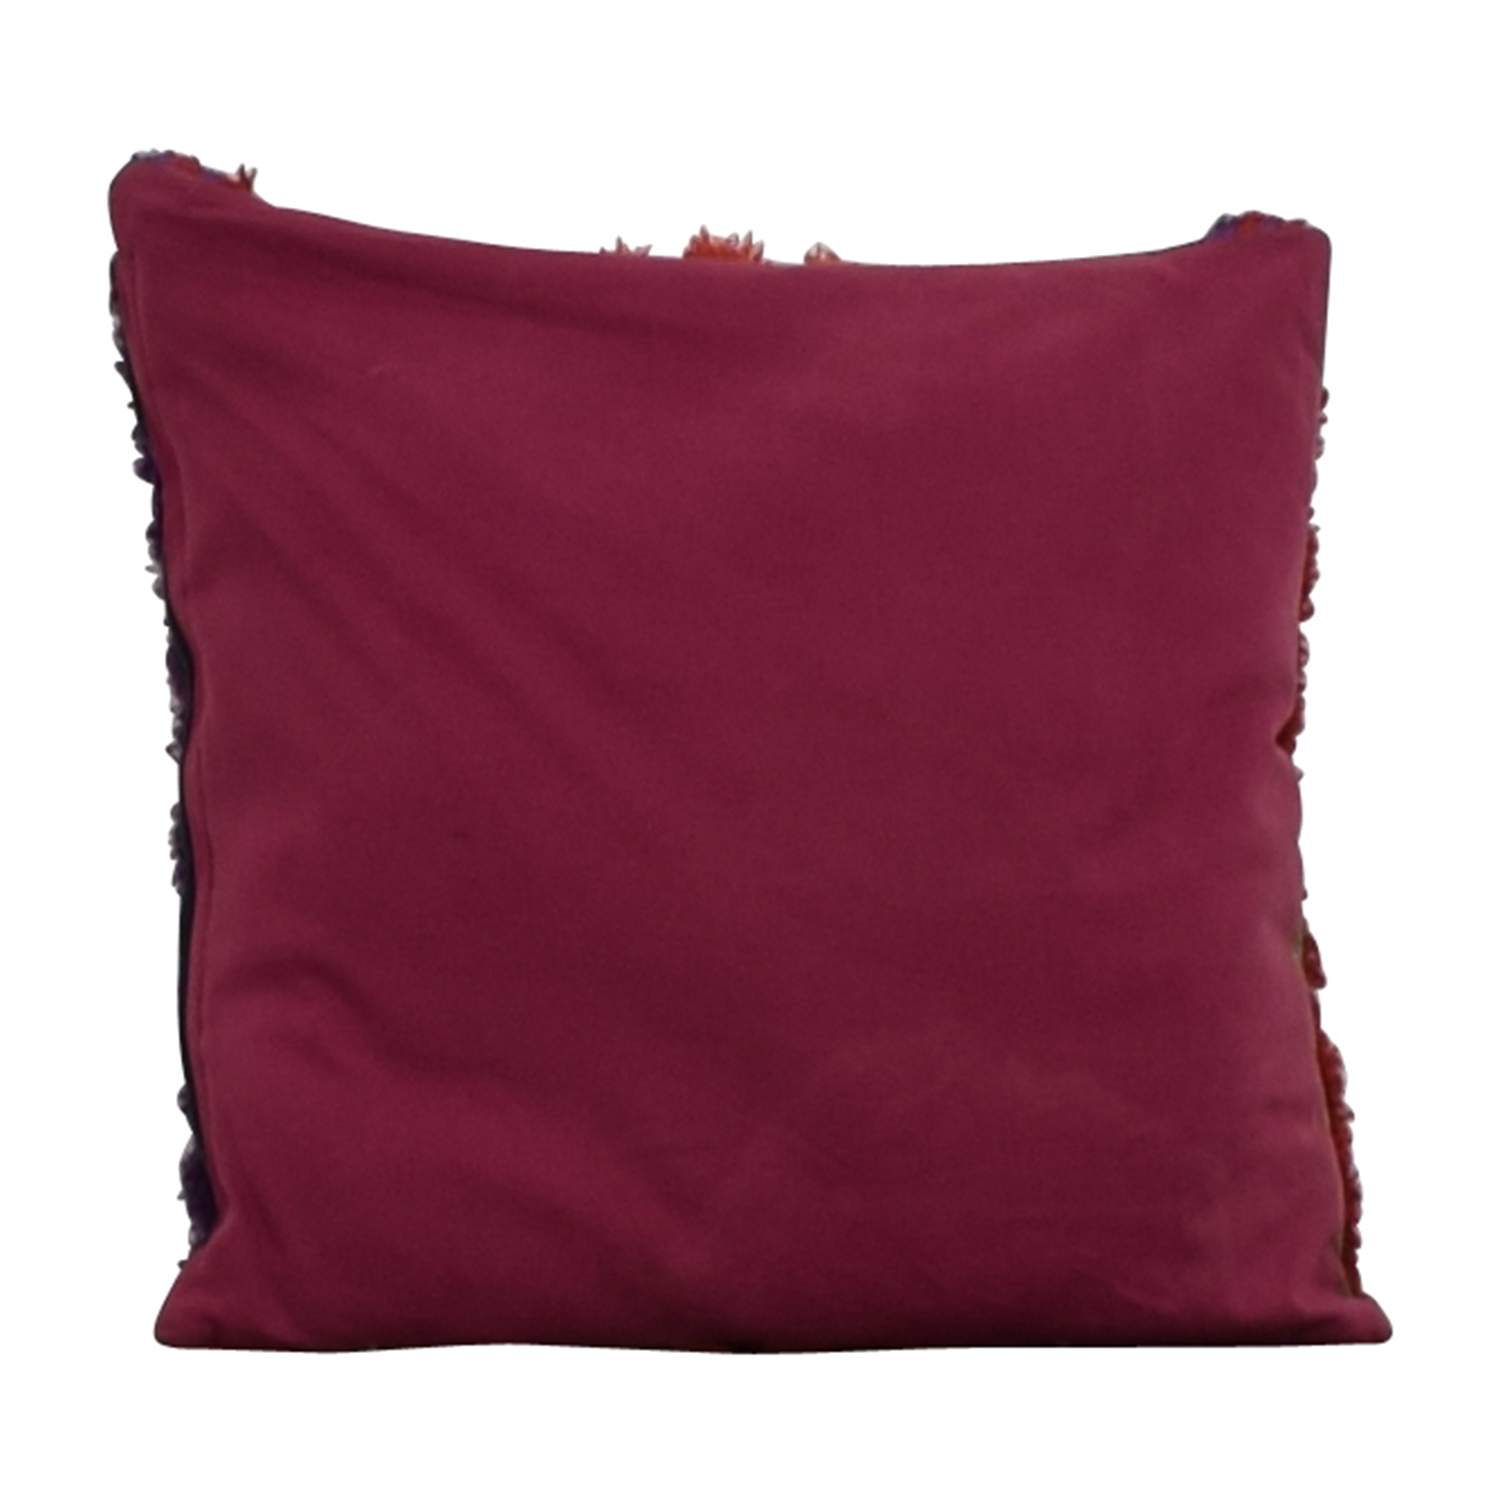 Multi-Colored Toss Pillow sale